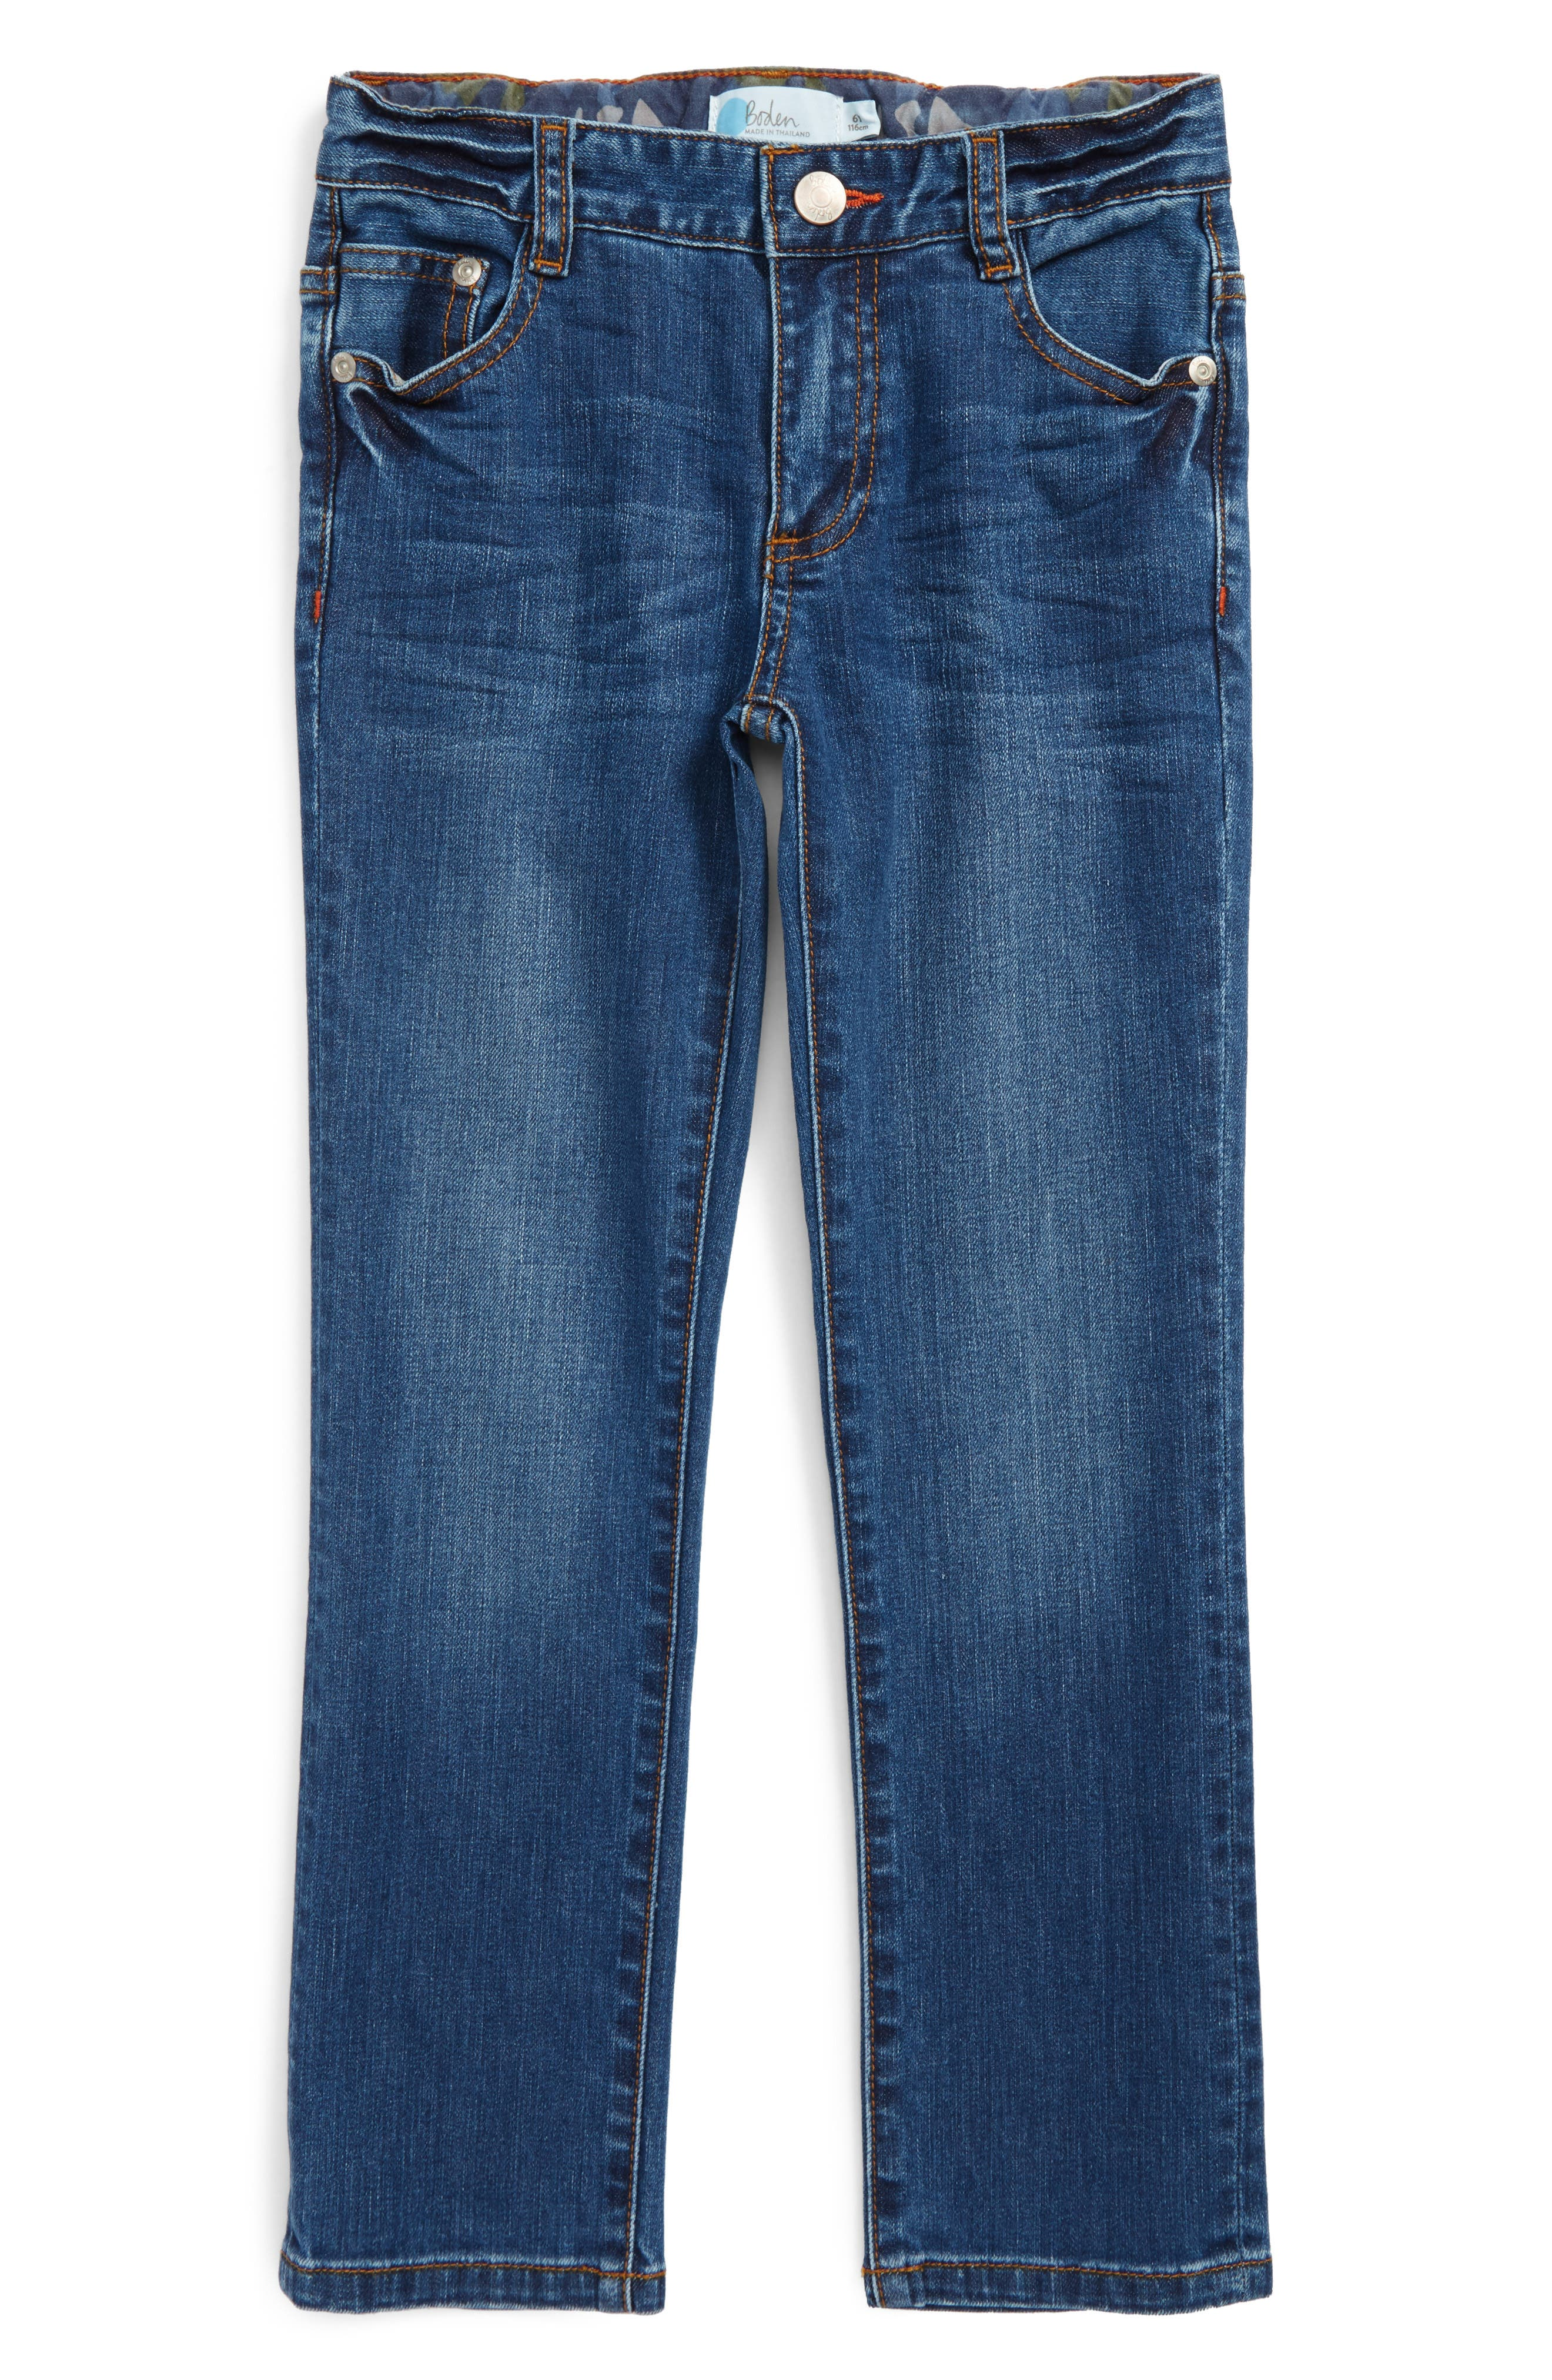 Alternate Image 1 Selected - Mini Boden Slim Straight Leg Jeans (Toddler Boys, Little Boys & Big Boys)